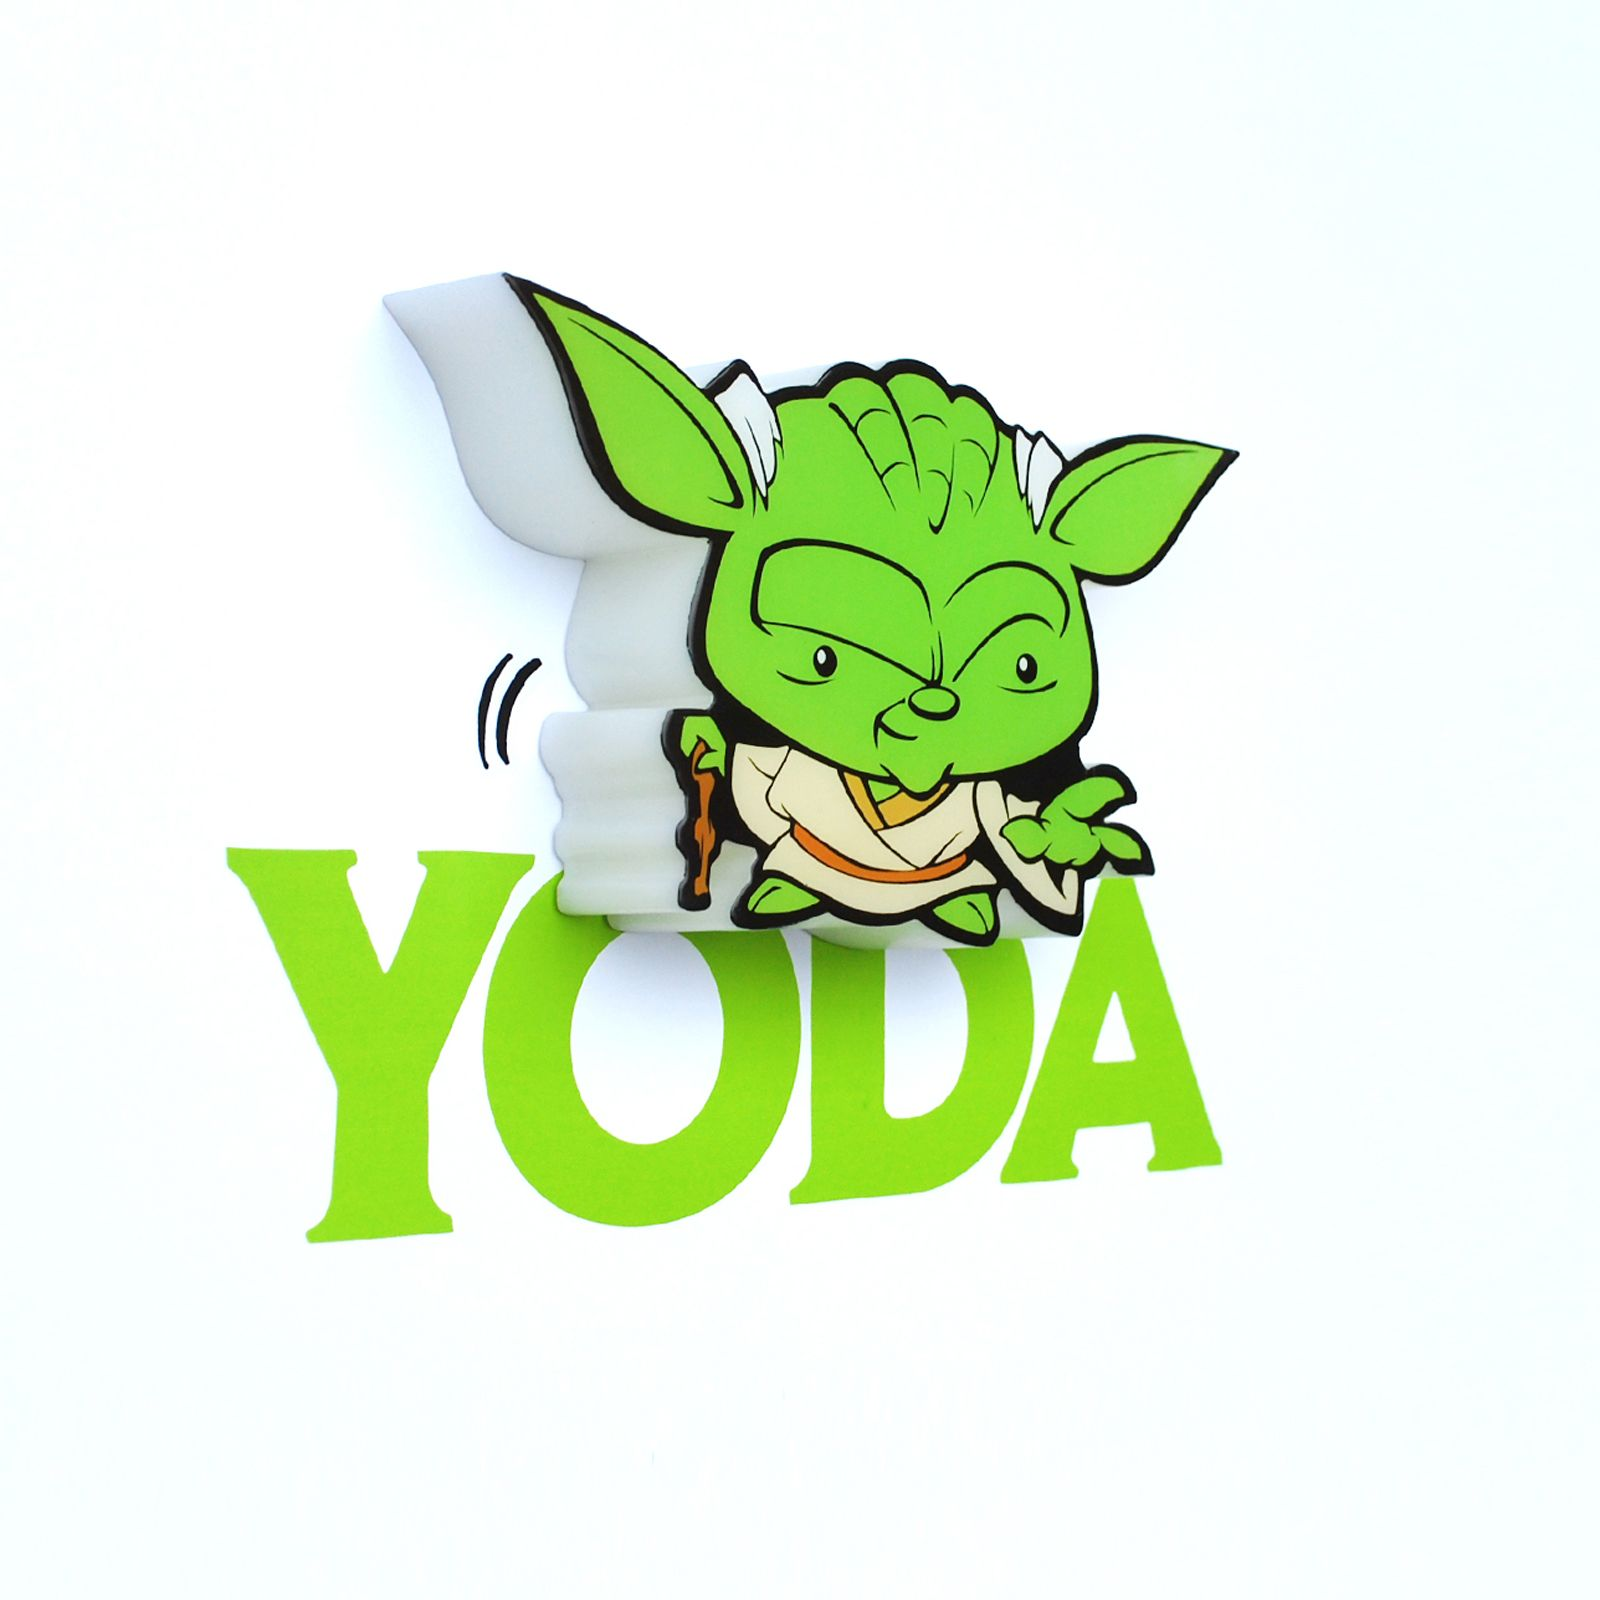 star wars yoda 3d led deko wandlicht neu offiziell ebay. Black Bedroom Furniture Sets. Home Design Ideas